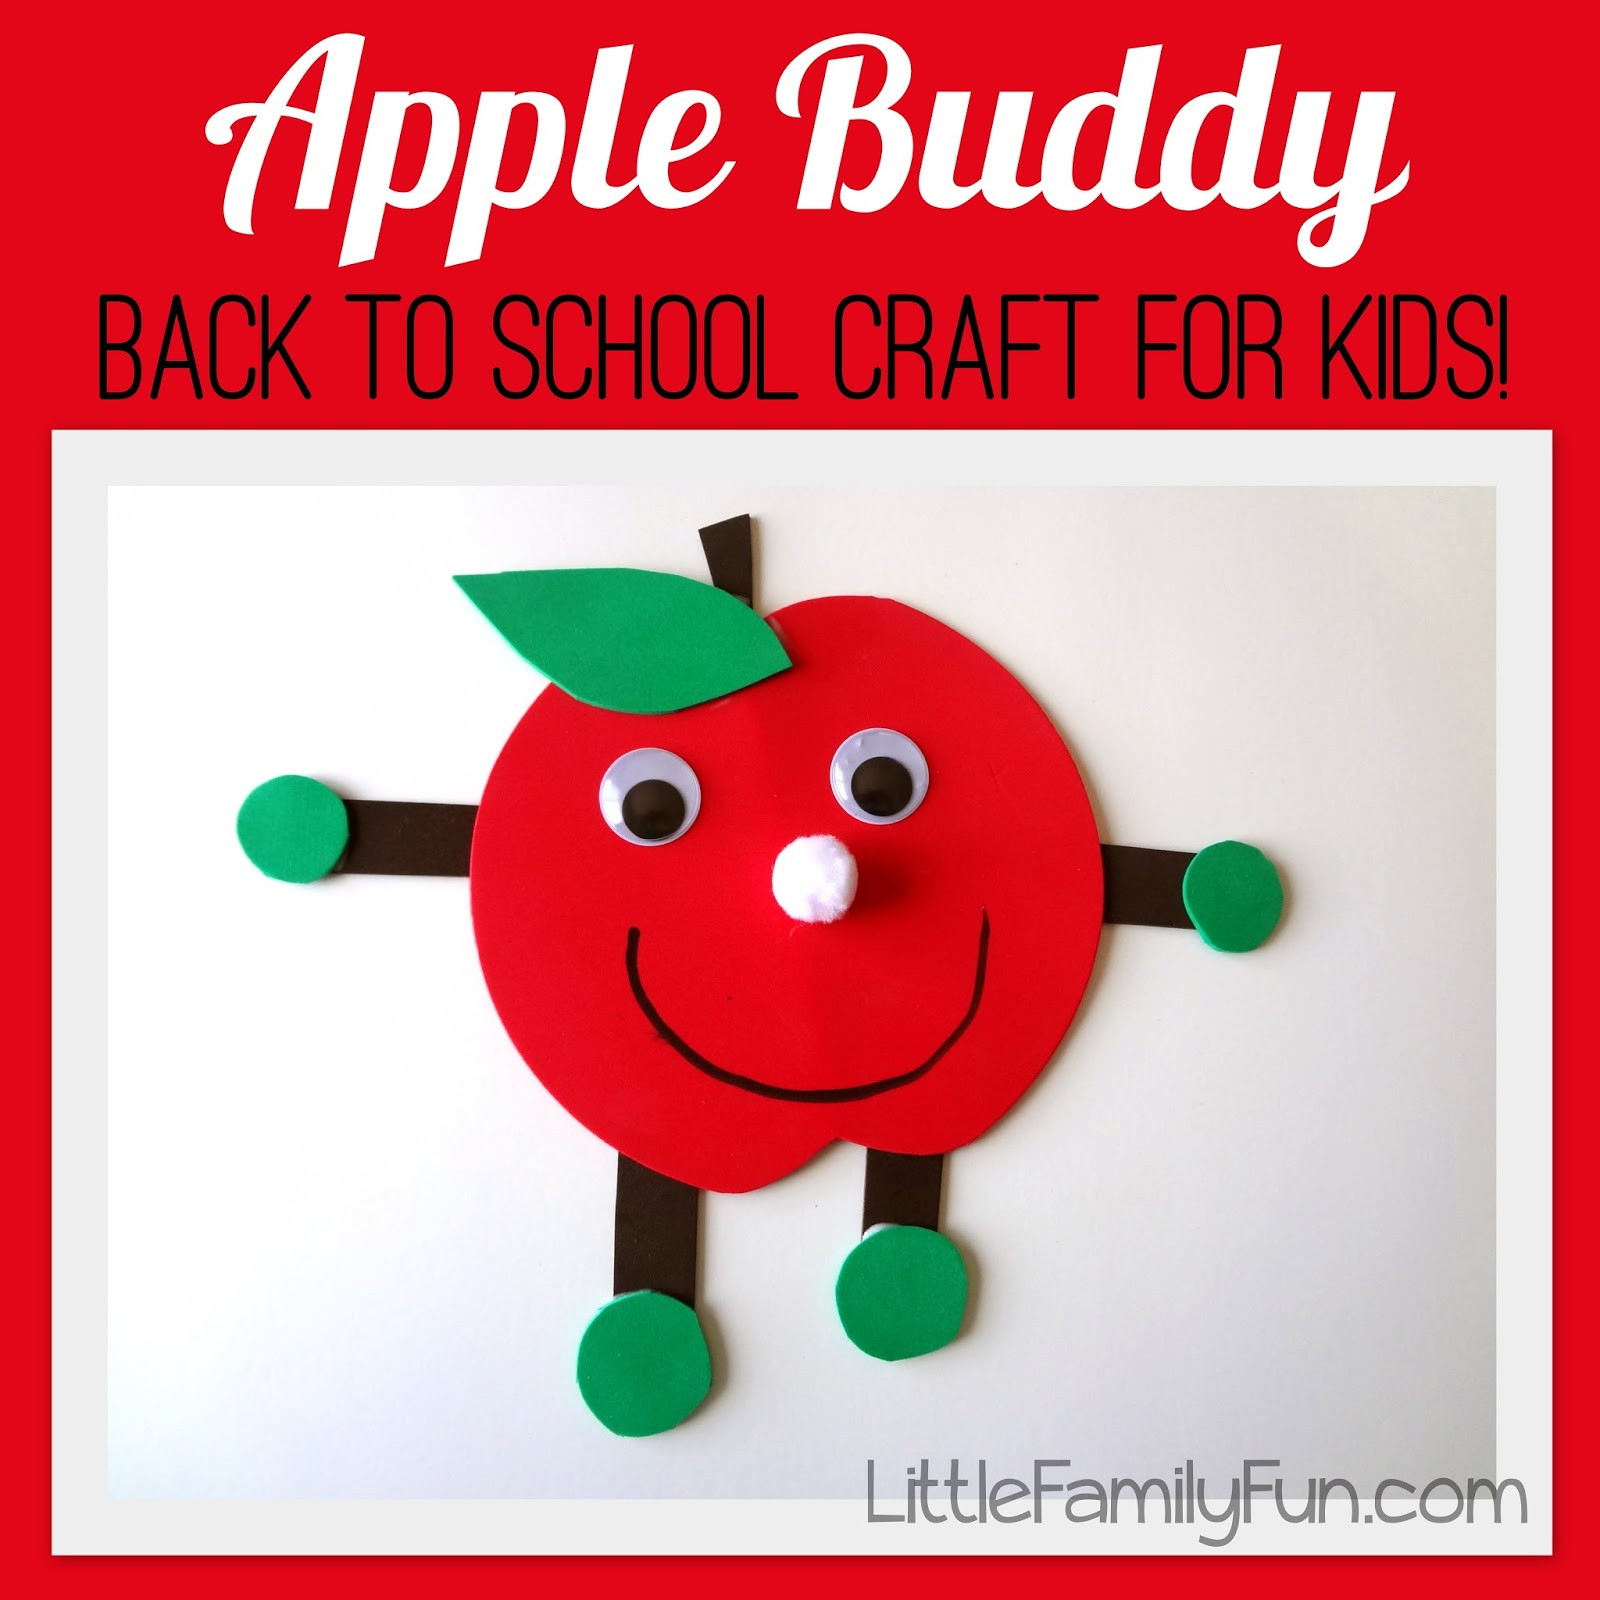 Little Family Fun Apple Buddy